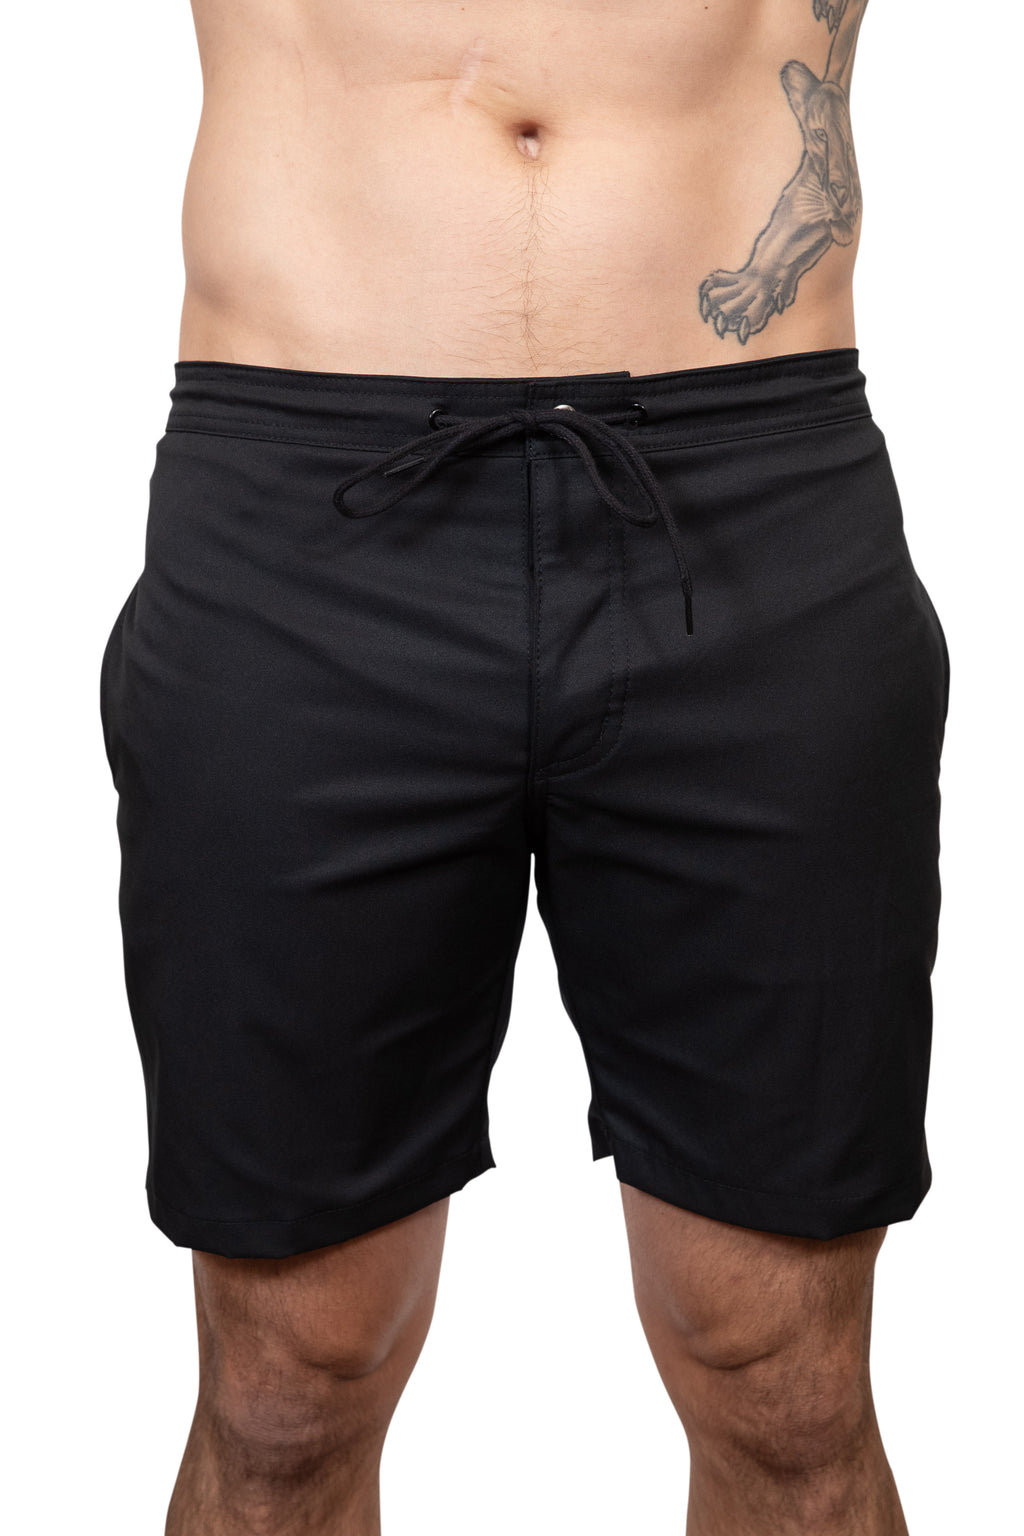 KINN Apparel classic swim short